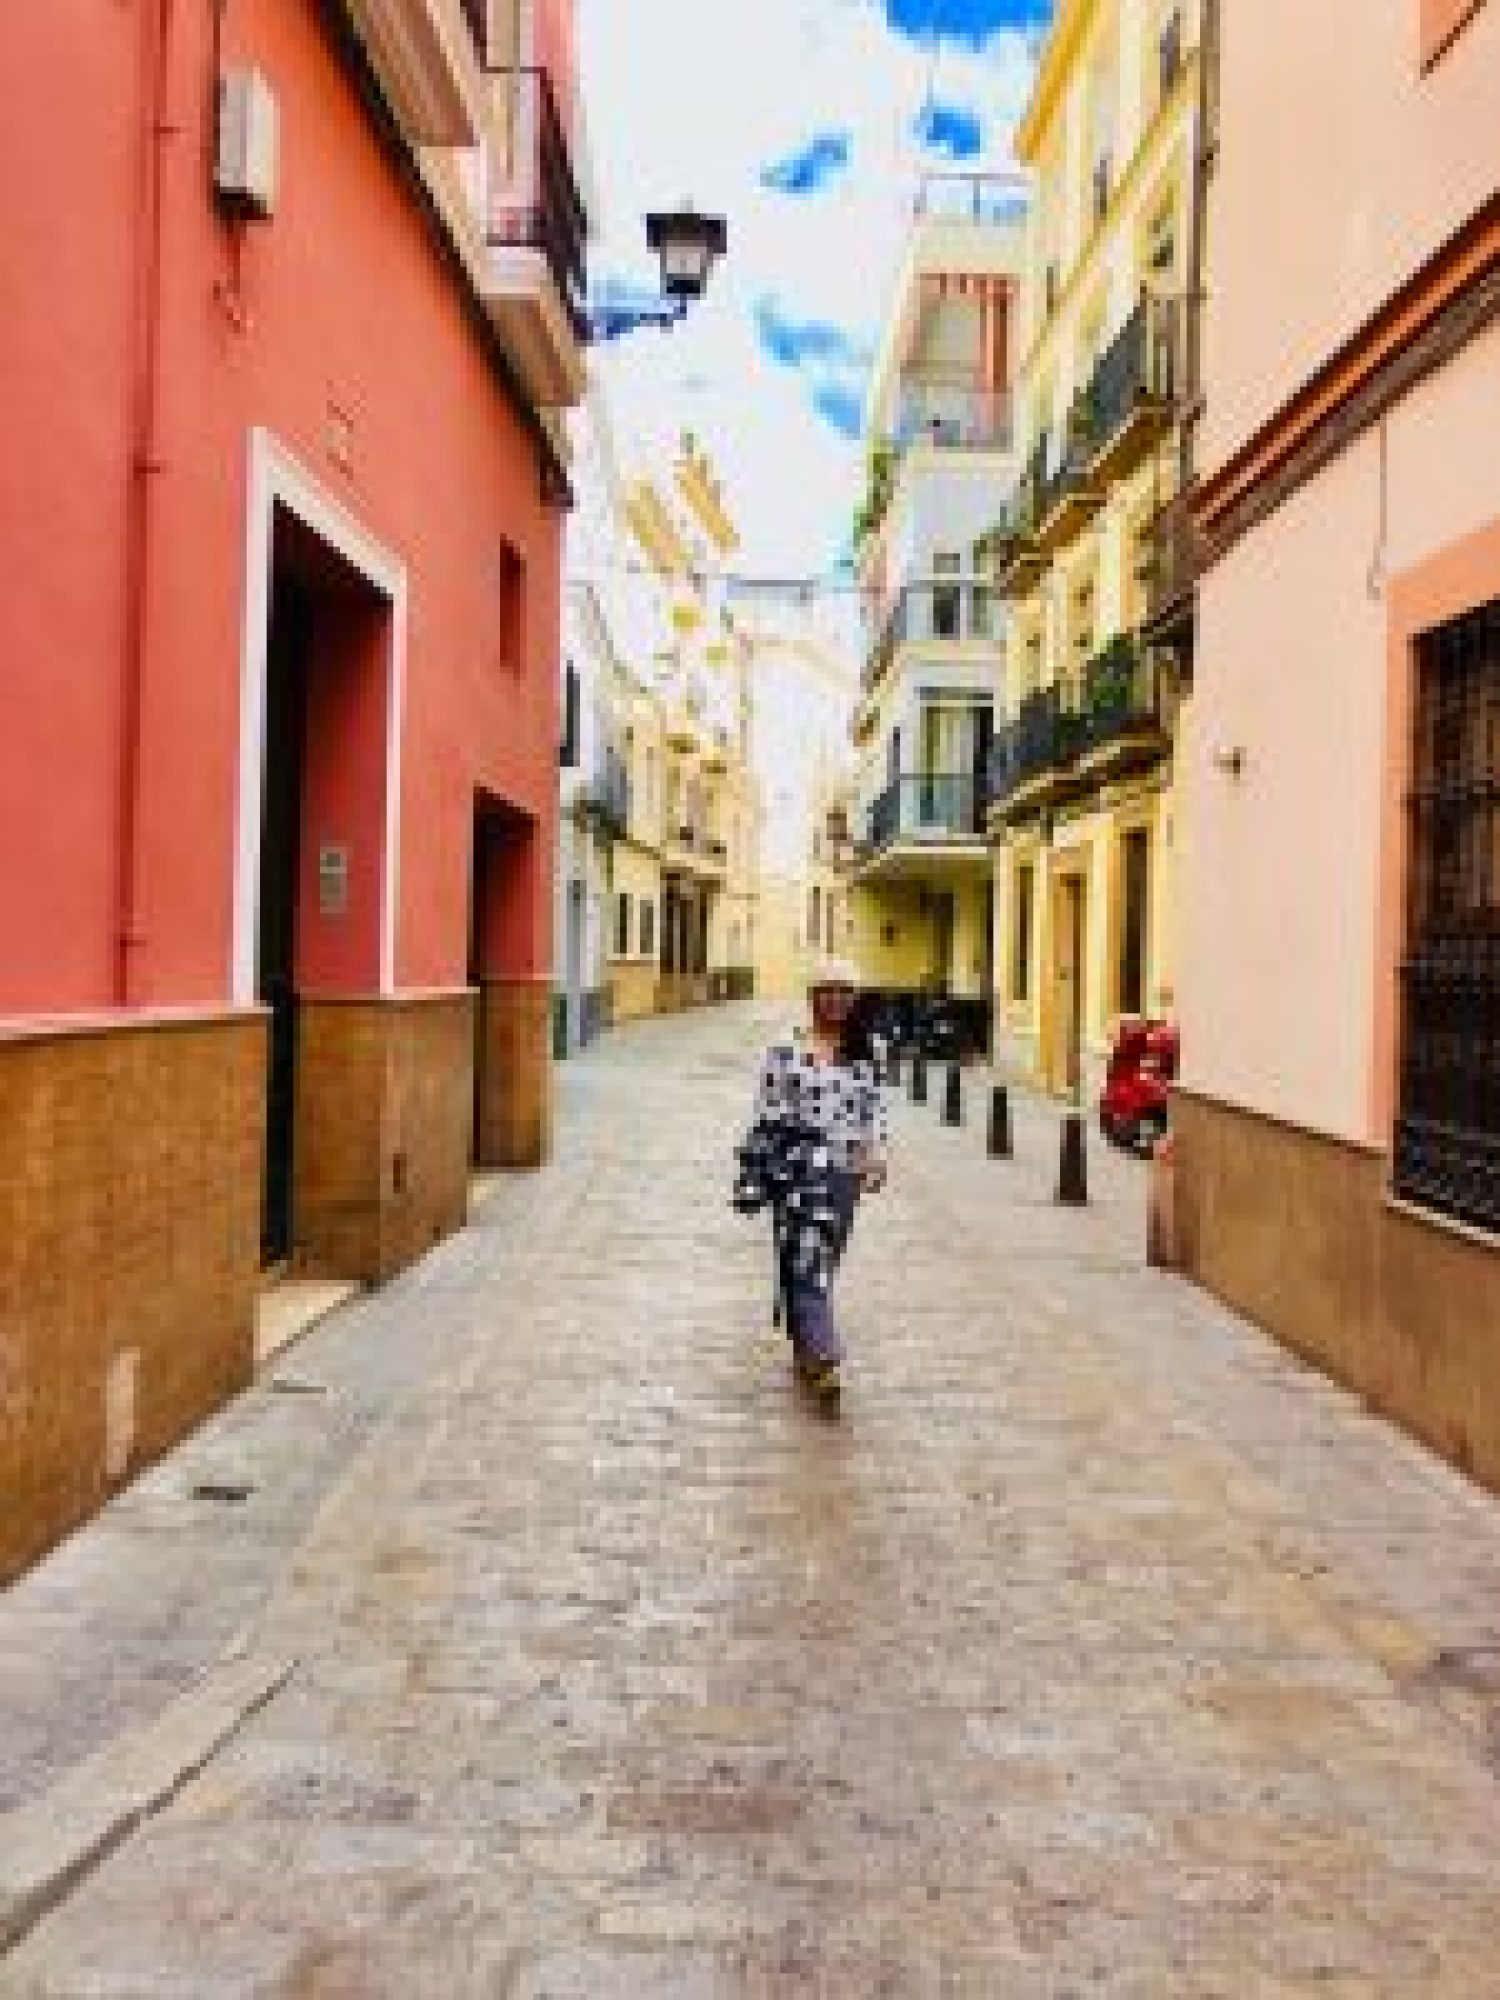 Seville TOP 51 DESTINATIONS TO VISIT IN 2019 FOR INDIANS